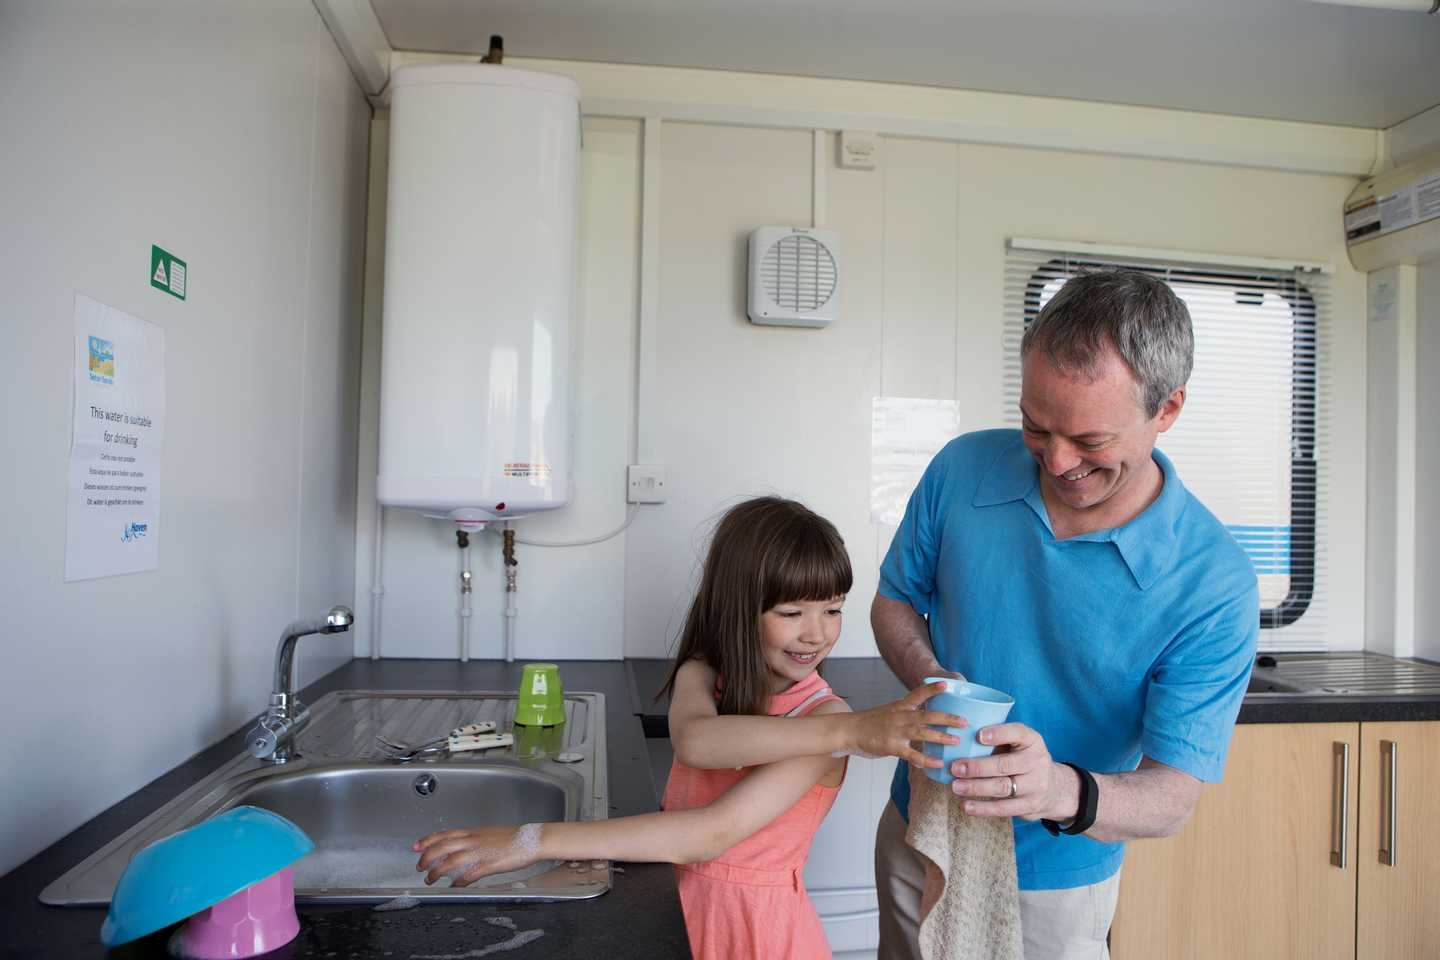 A father and daughter washing dishes